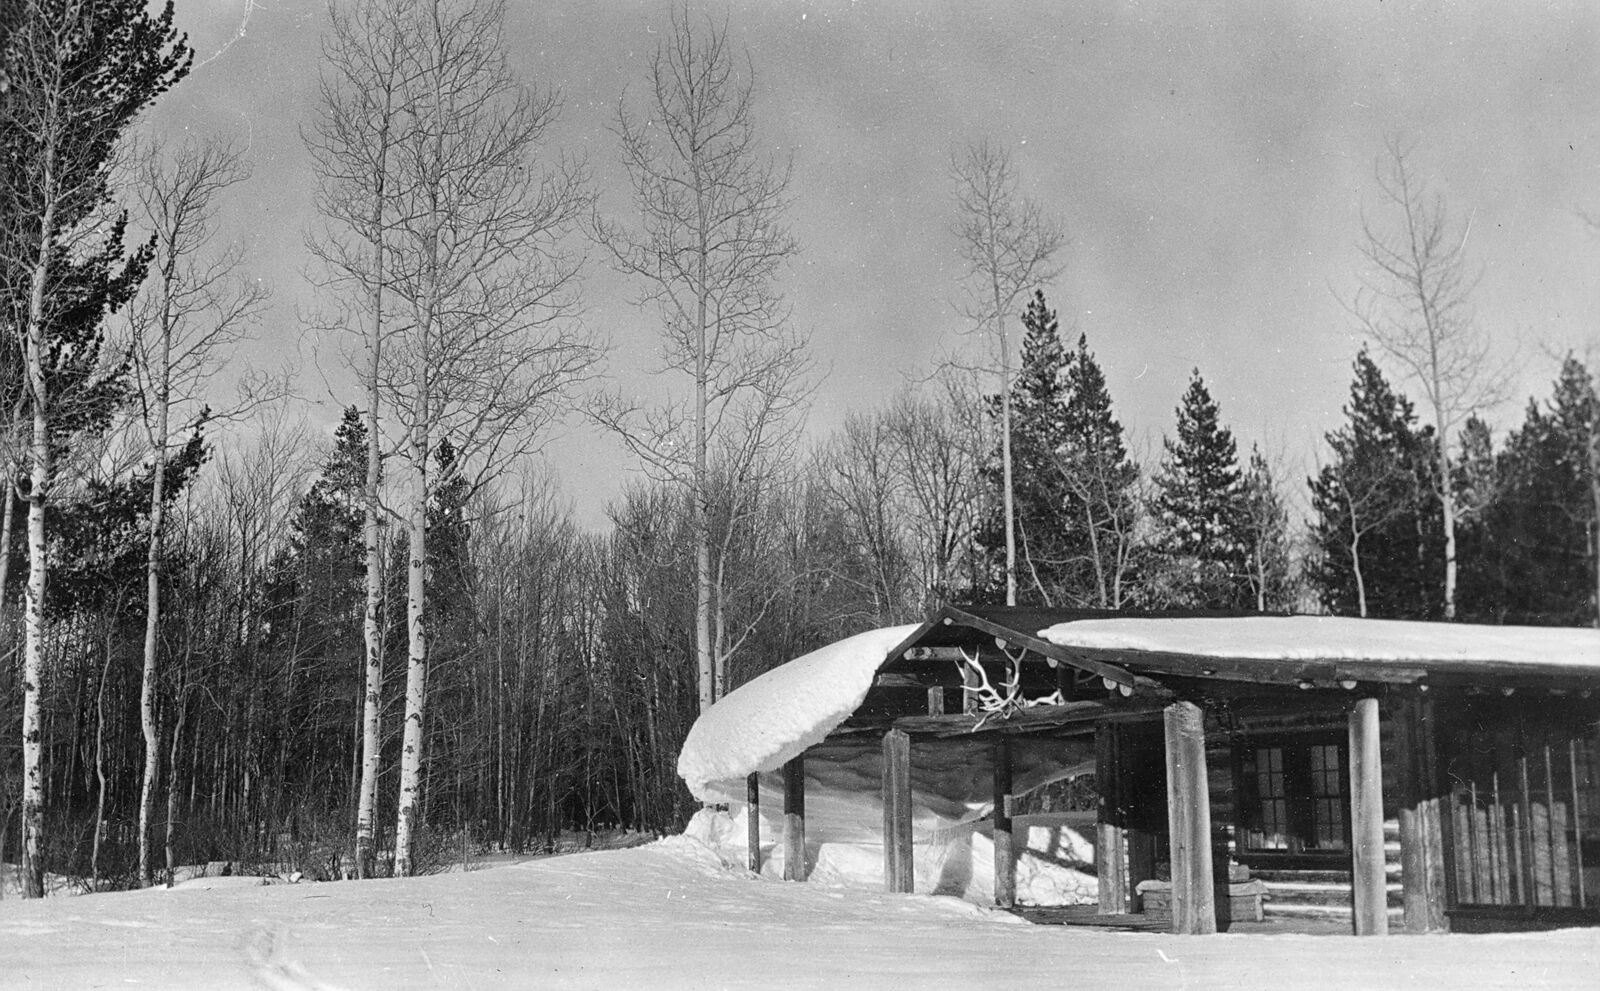 Geraldineu0027s Cabin At Lucas Fabian Homestead. Collection Of The Jackson Hole  Historical Society And